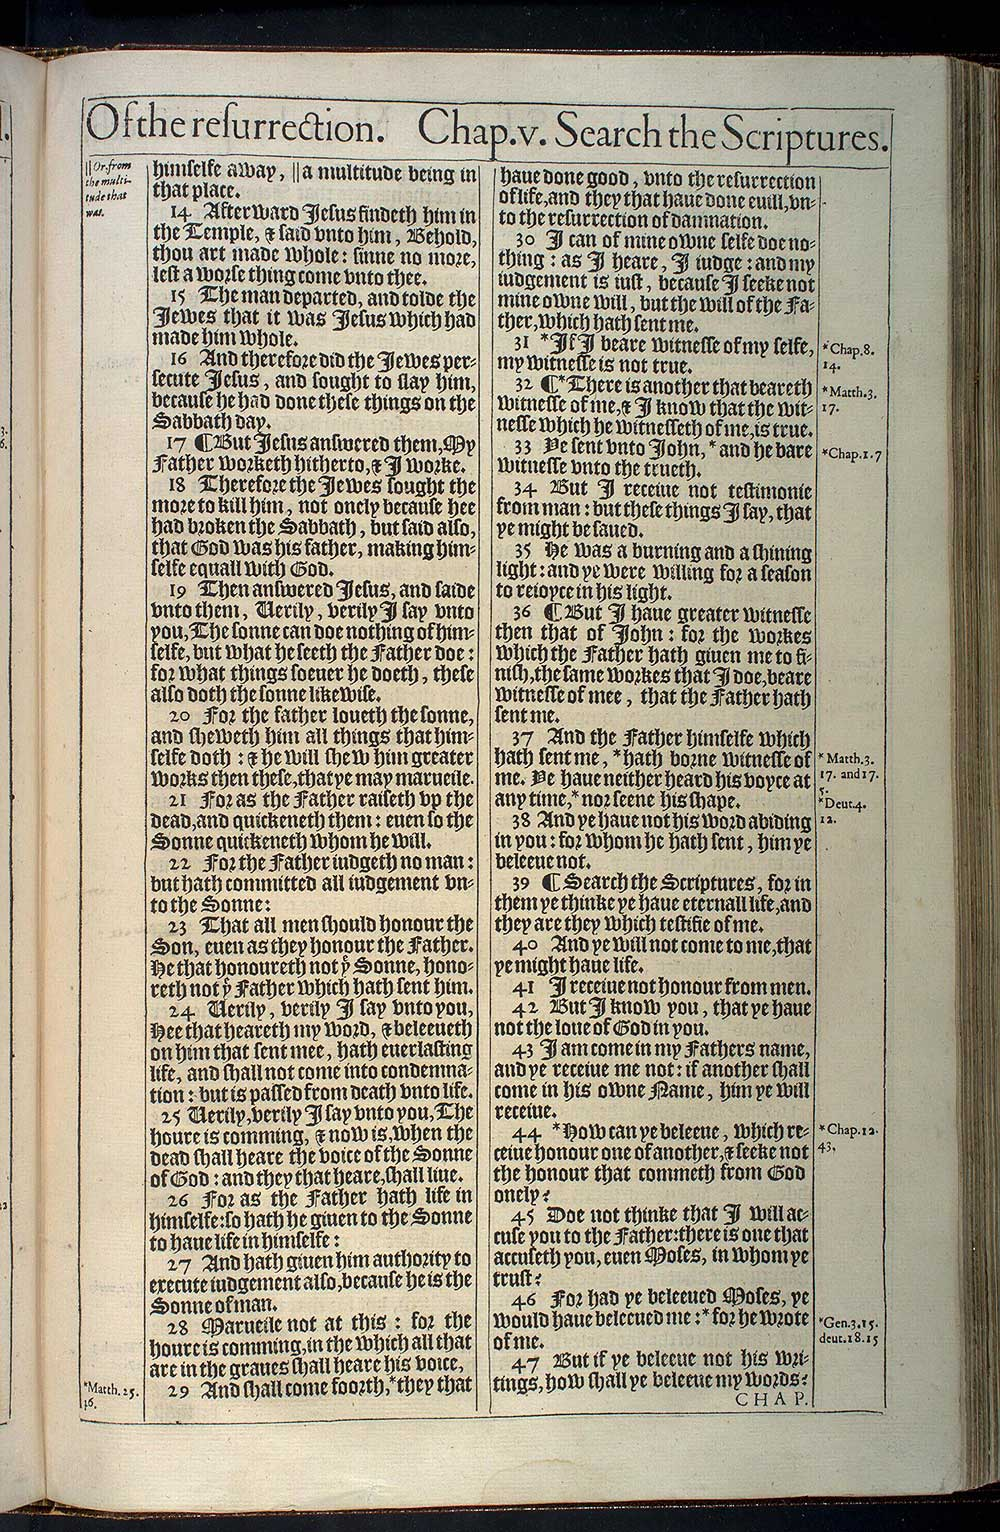 John Chapter 5 Original 1611 Bible Scan